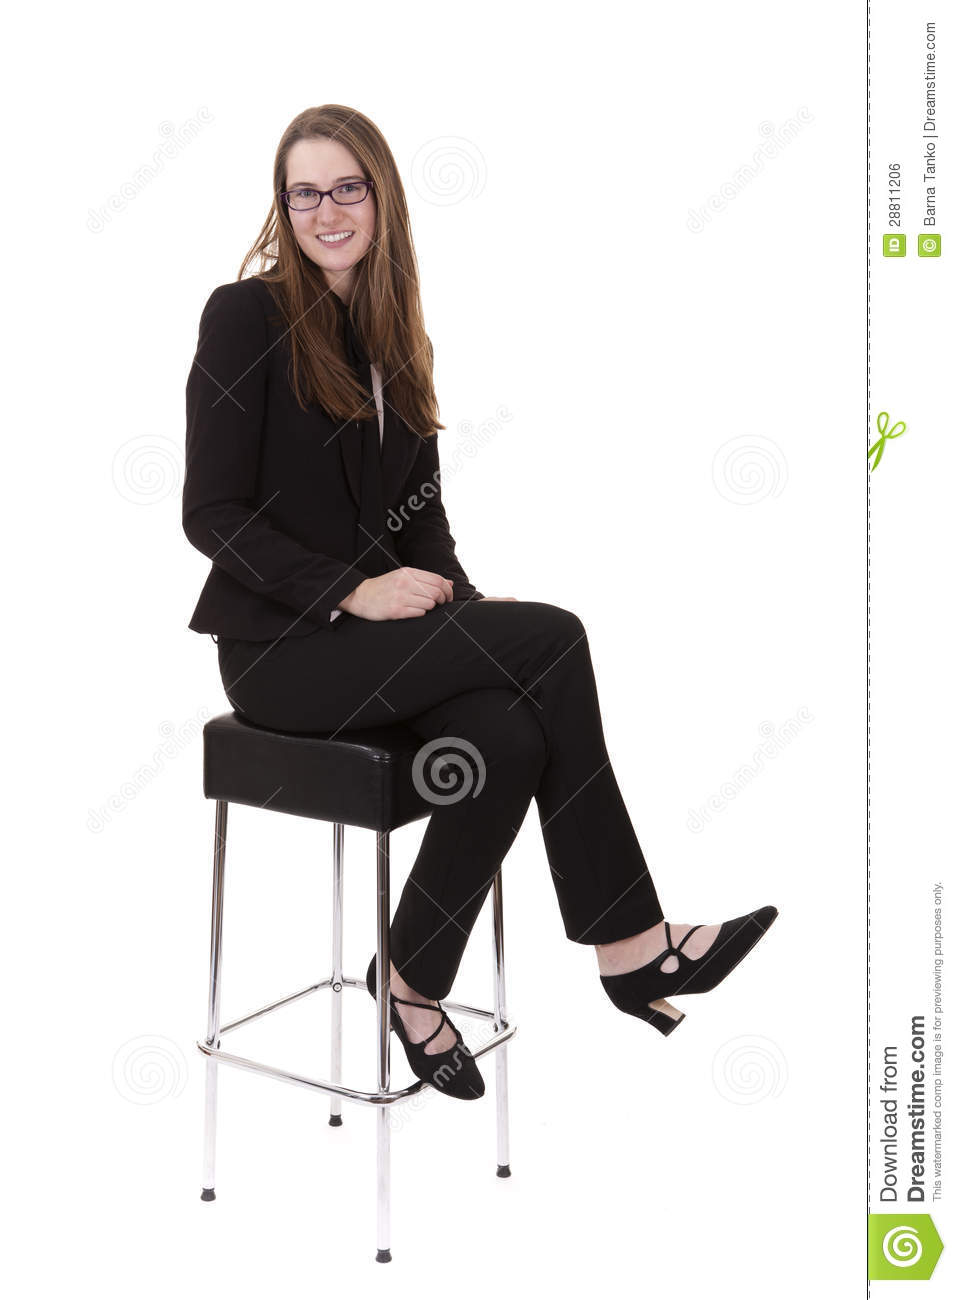 Woman In Business Suit Royalty Free Stock Image Image  : woman business suit 28811206 from www.dreamstime.com size 957 x 1300 jpeg 66kB